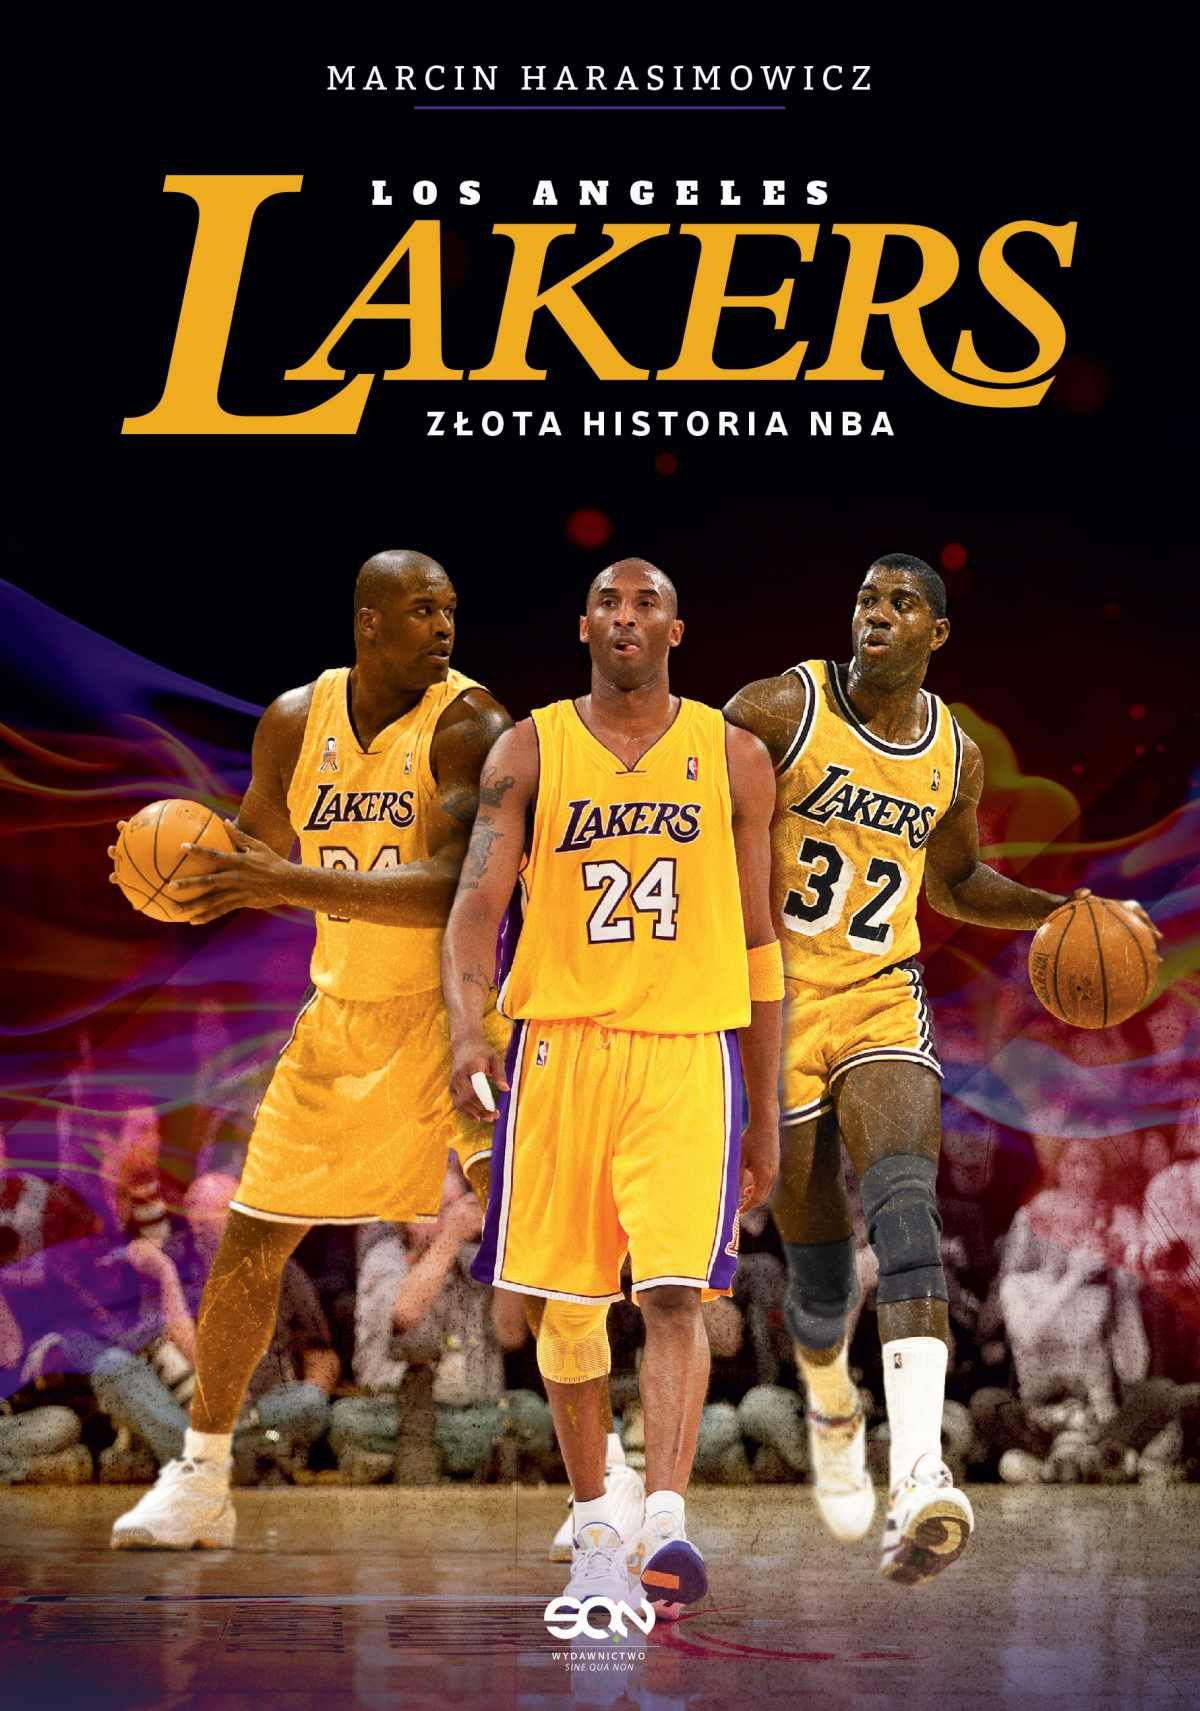 Los Angeles Lakers. Złota historia NBA - Ebook (Książka EPUB) do pobrania w formacie EPUB